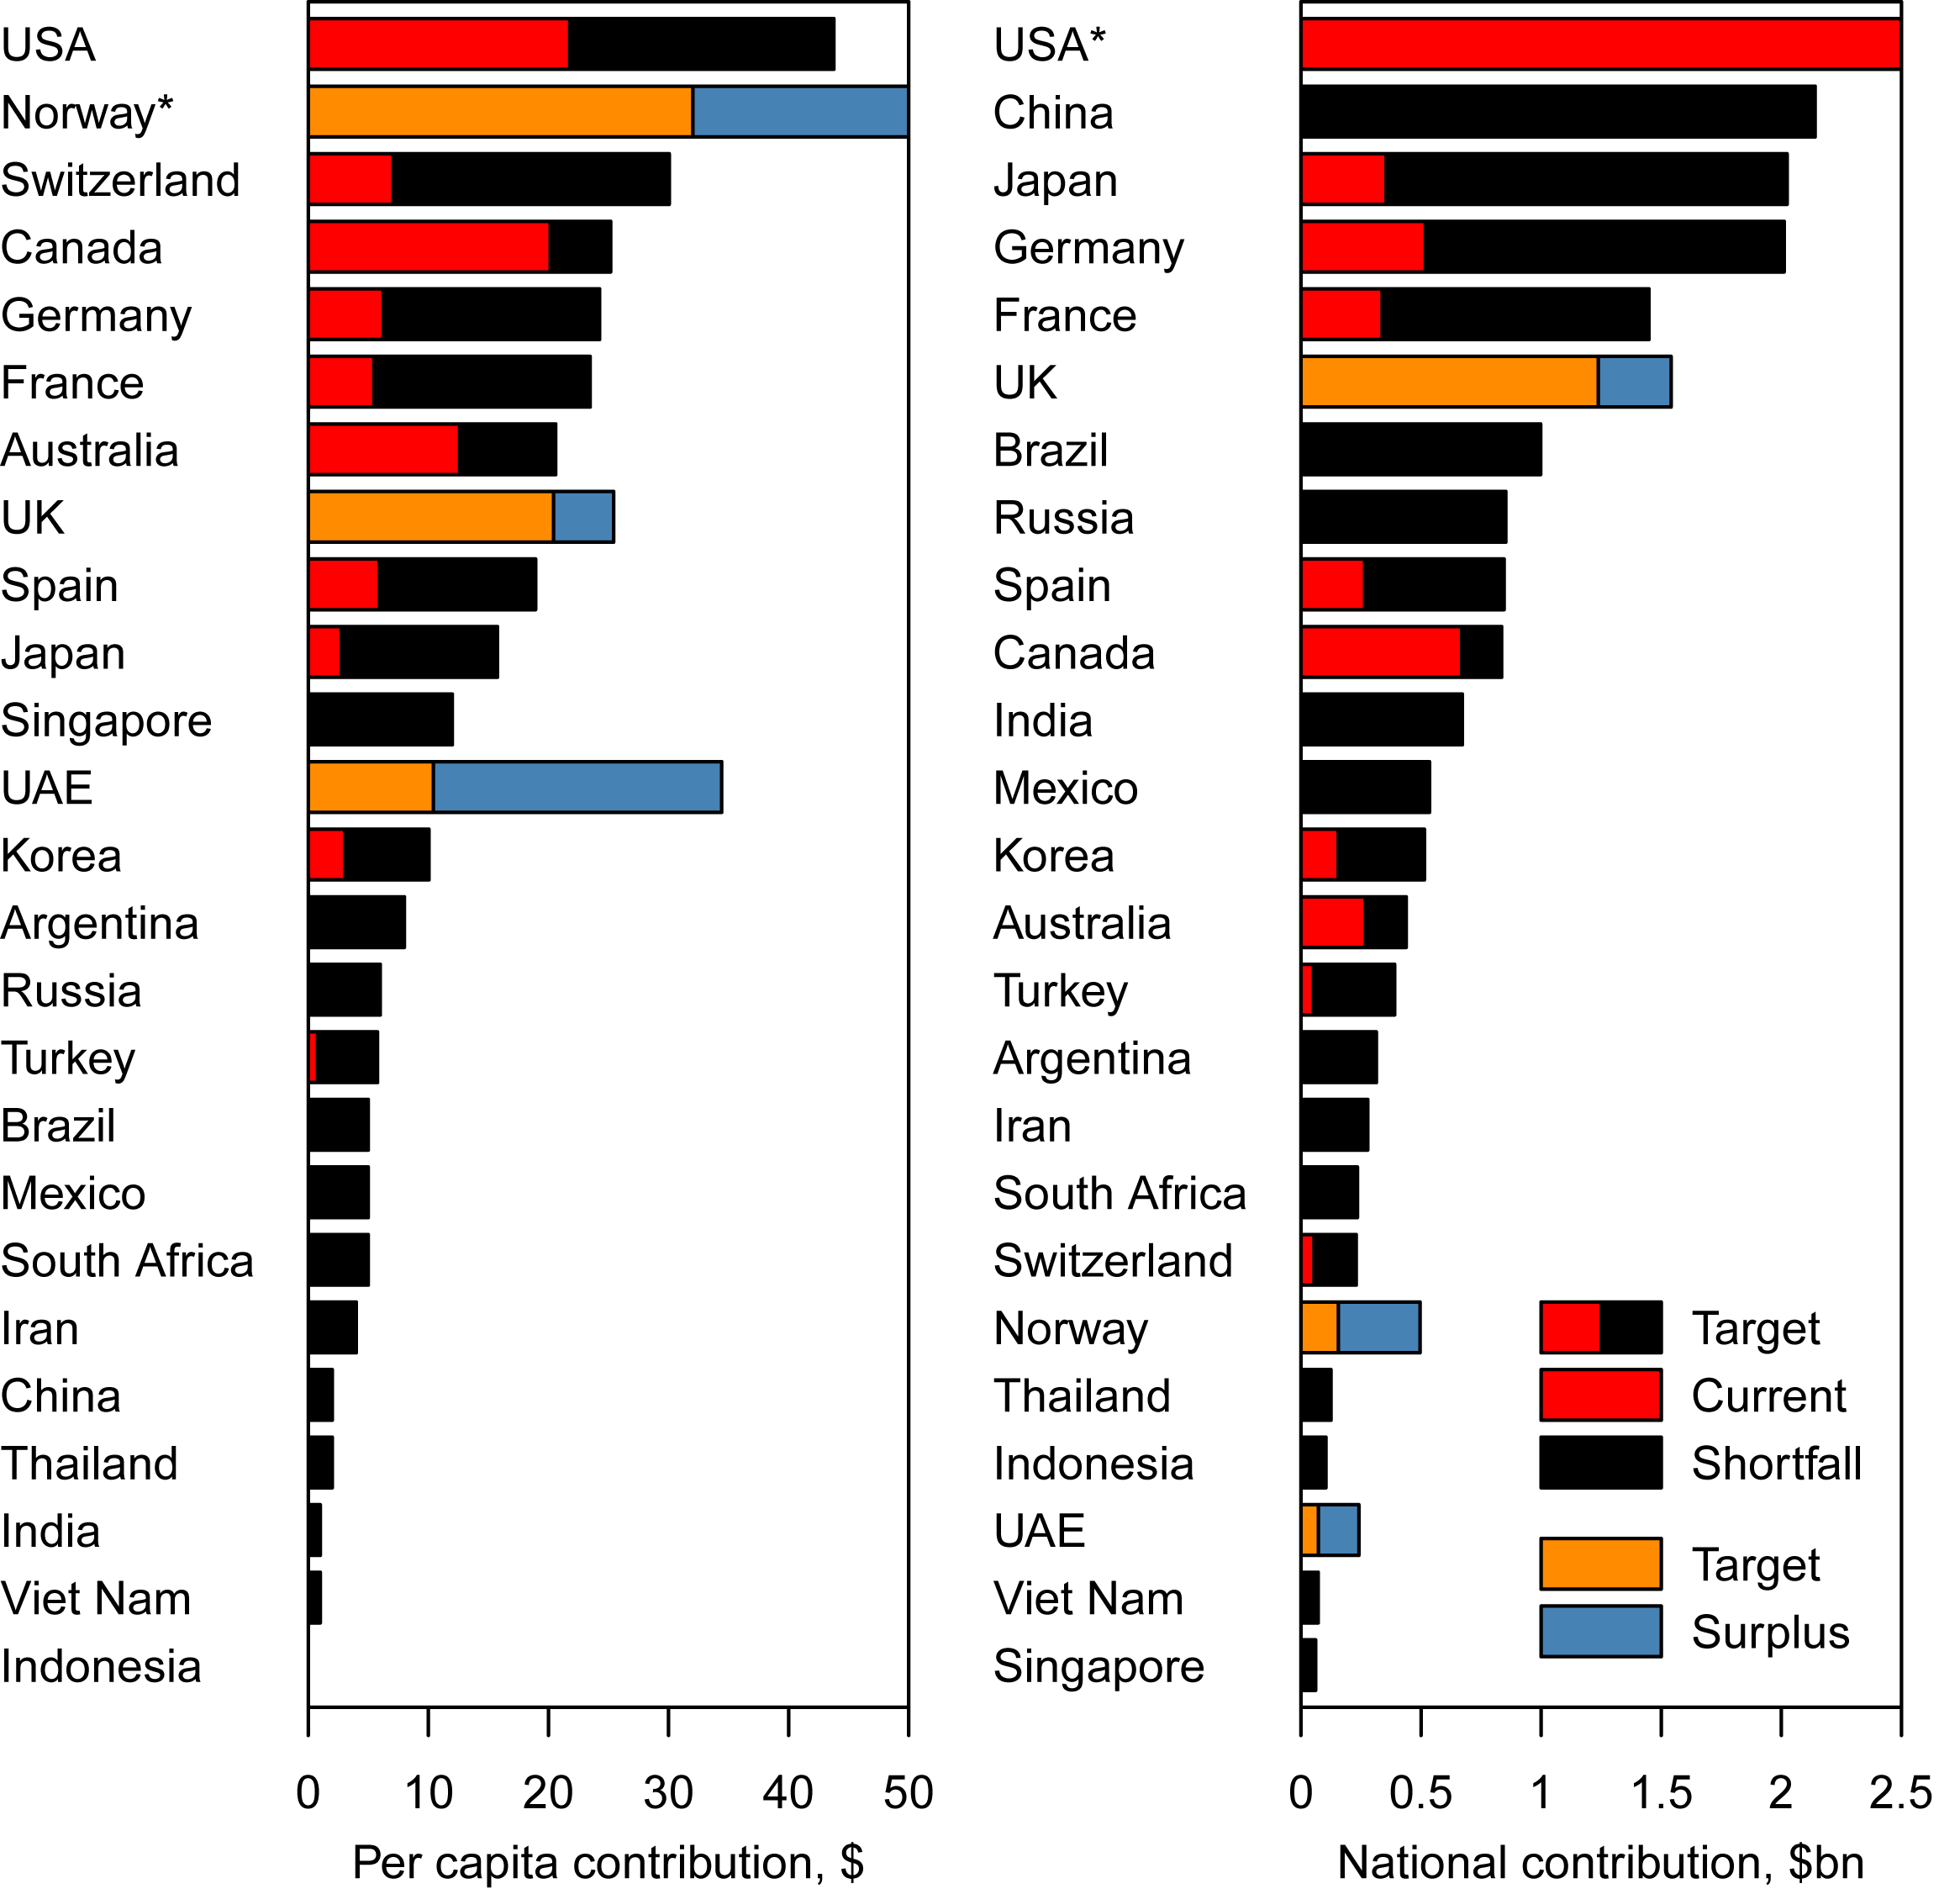 "Total and per capita annual expected contributions to meet the health MDGs (""Target""), compared to the current level of donations (""Current"") in 25 selected countries."